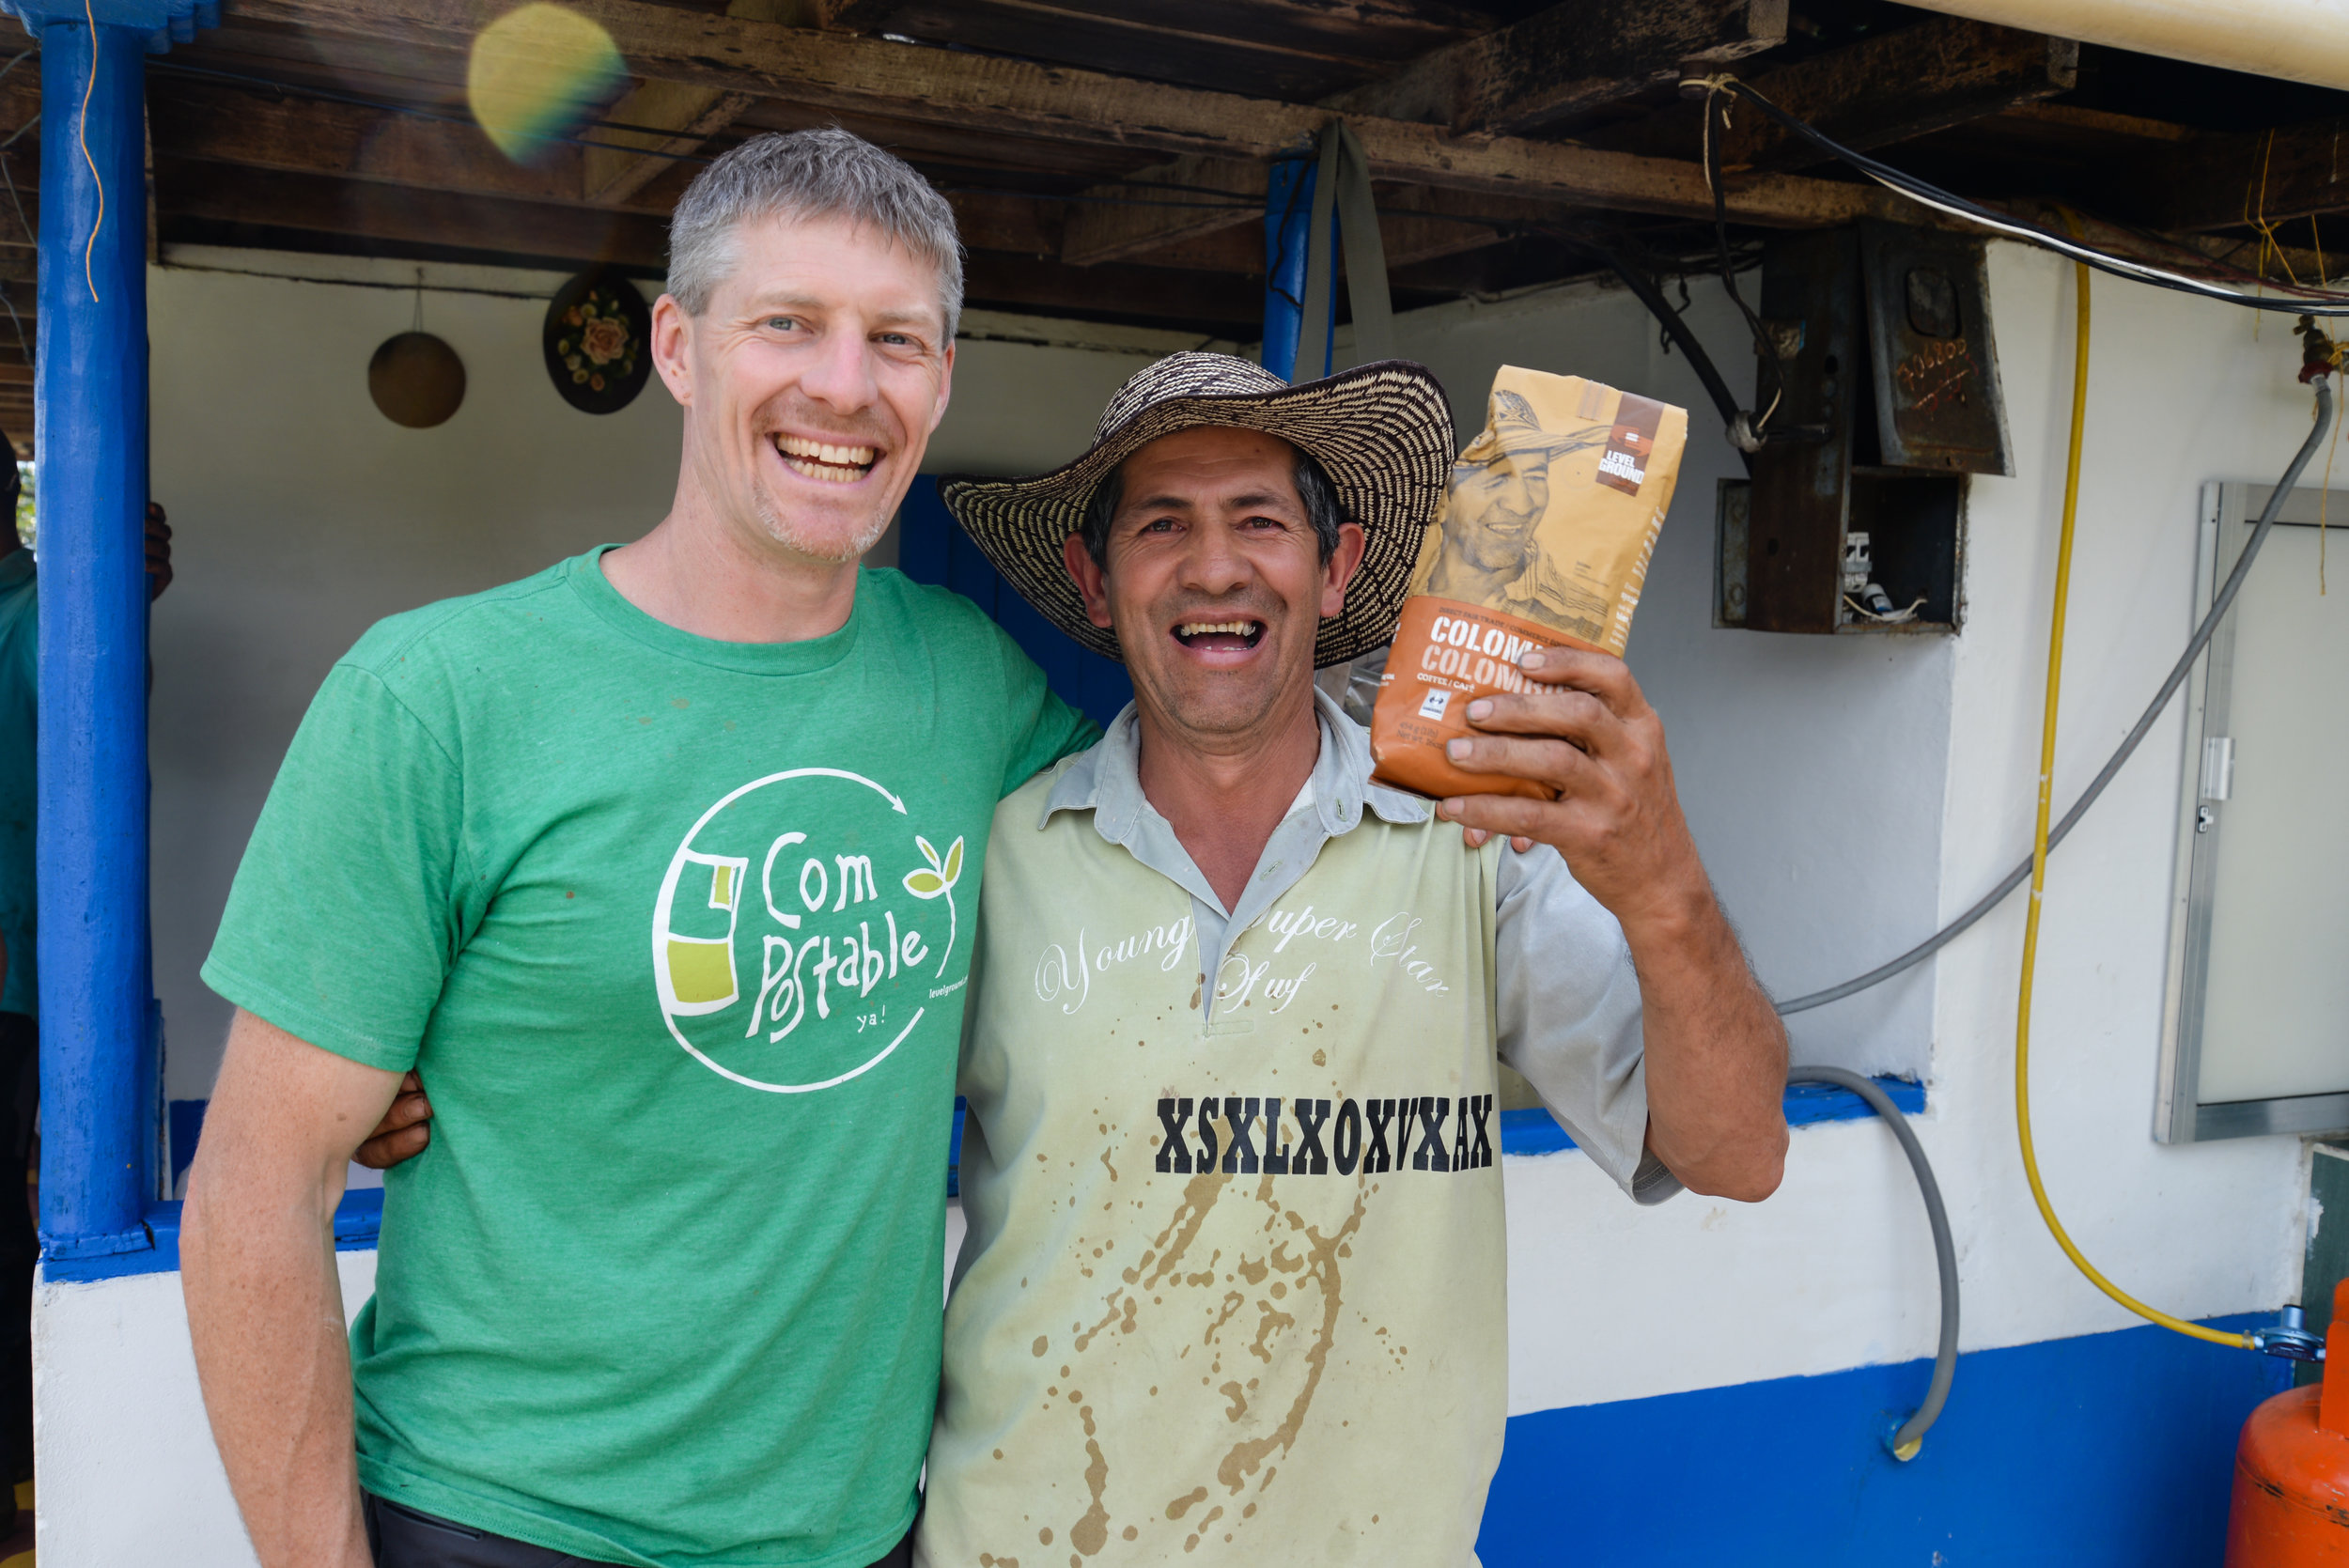 Co-owner Stacey shows Jaime his face on the Colombia coffee package for the first time!